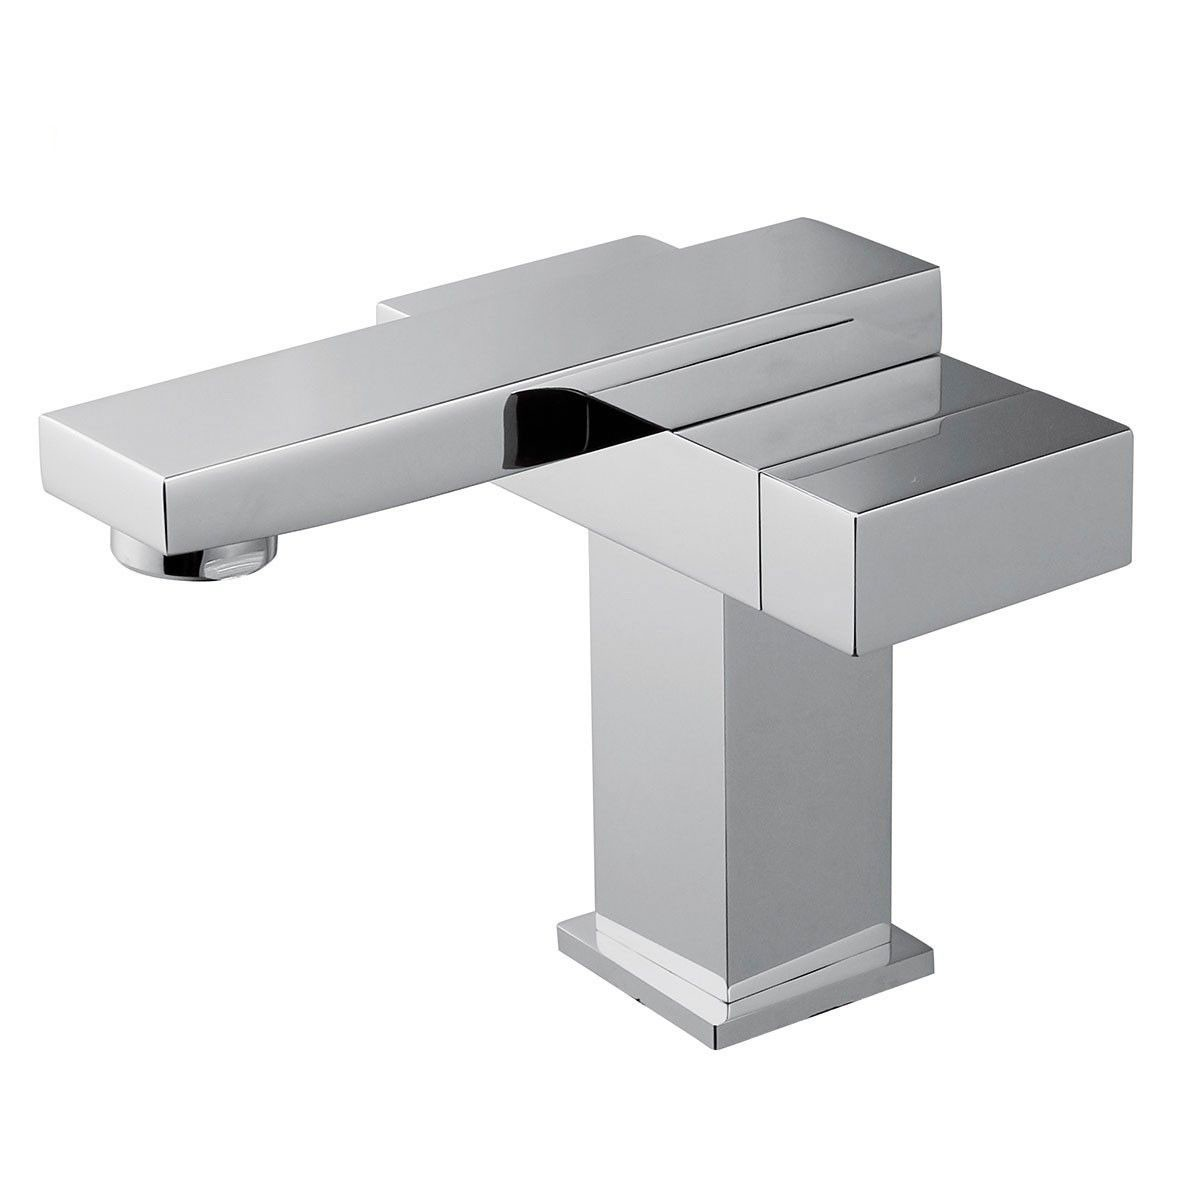 Basin&Sink Faucet - Brass with Chrome Finish (6051)